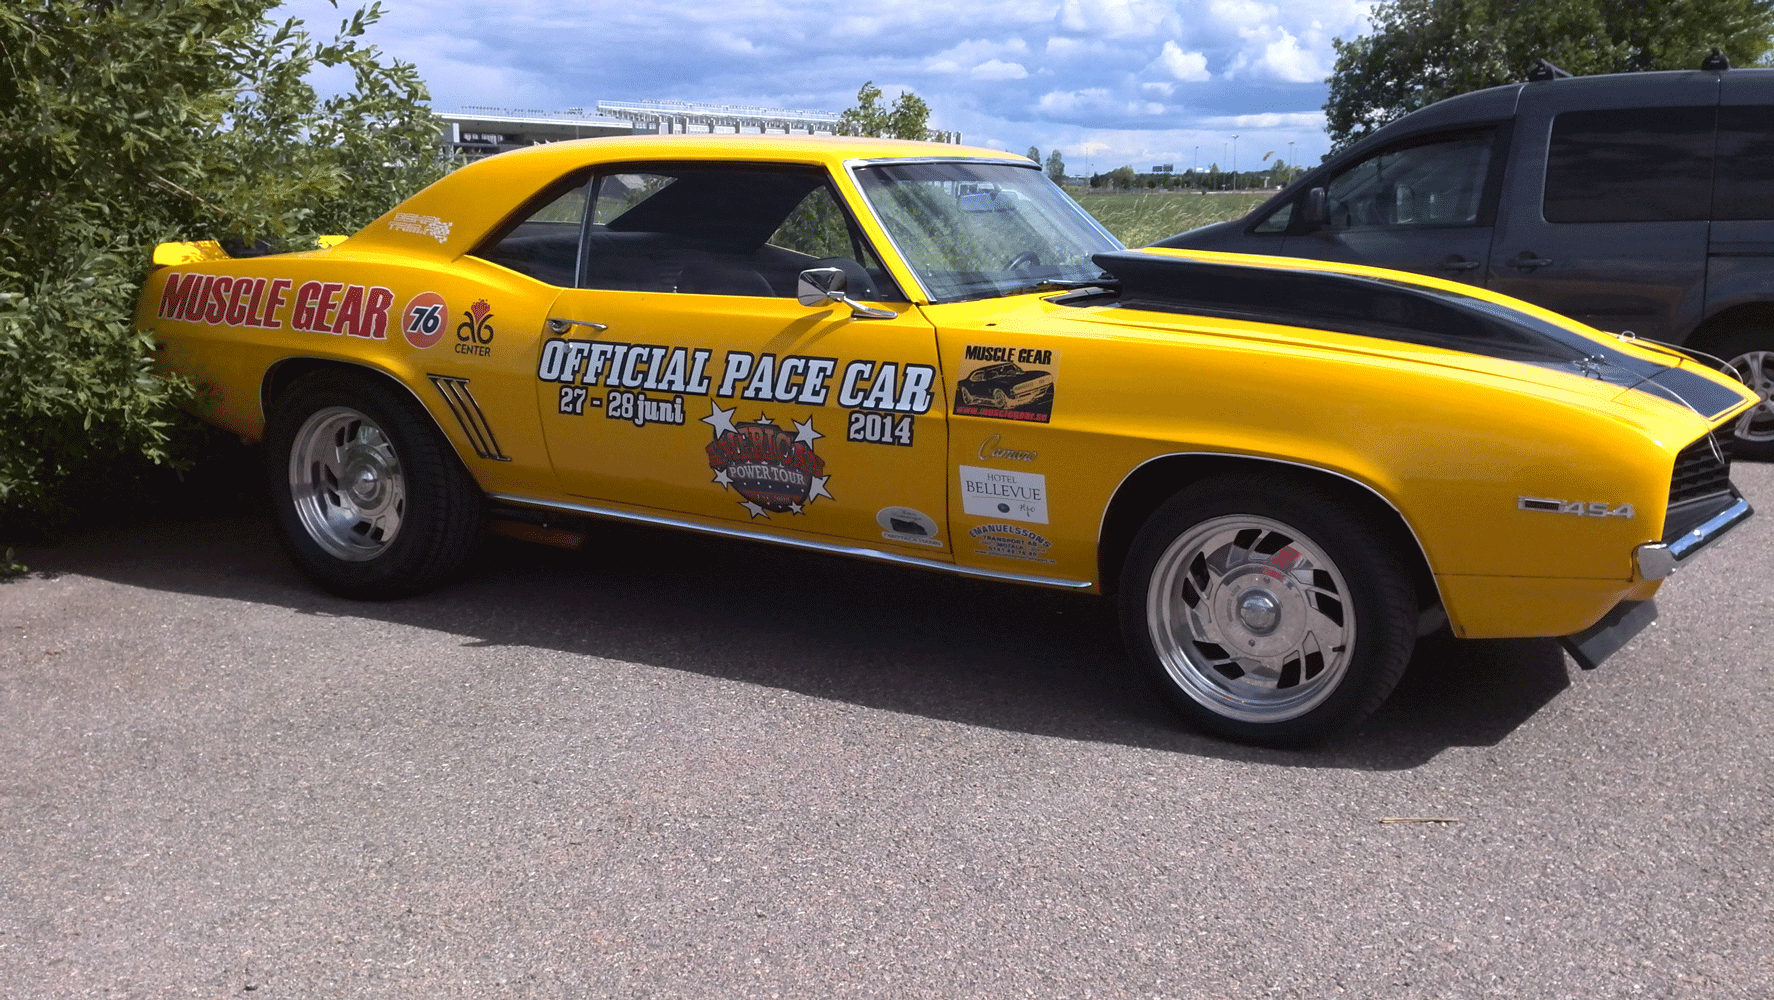 Muscle Gear Pace Car 2014